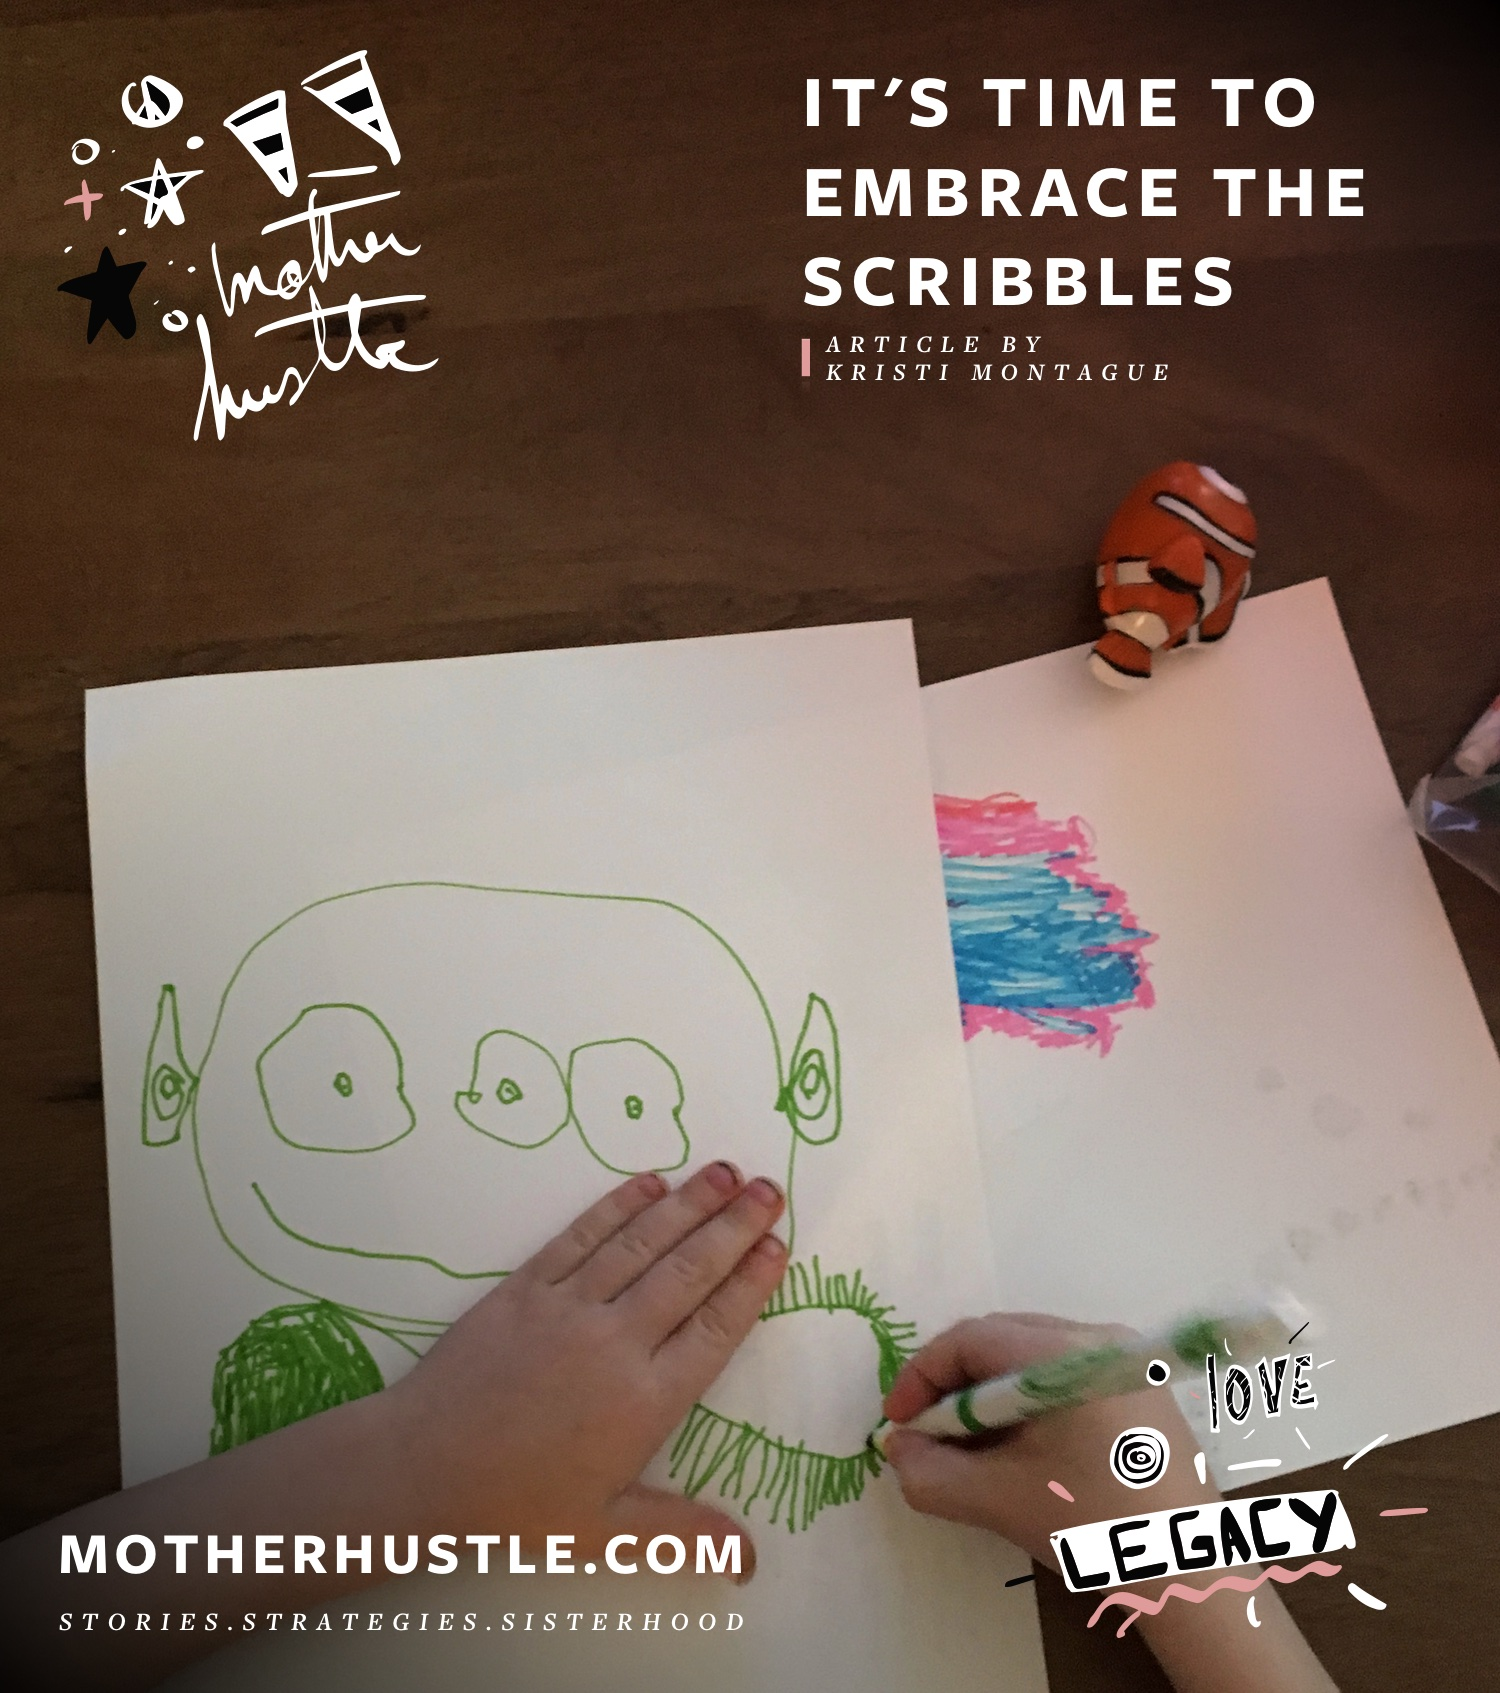 It's TIme To Embrace the Scribbles - Kristi Montague MotherHustle